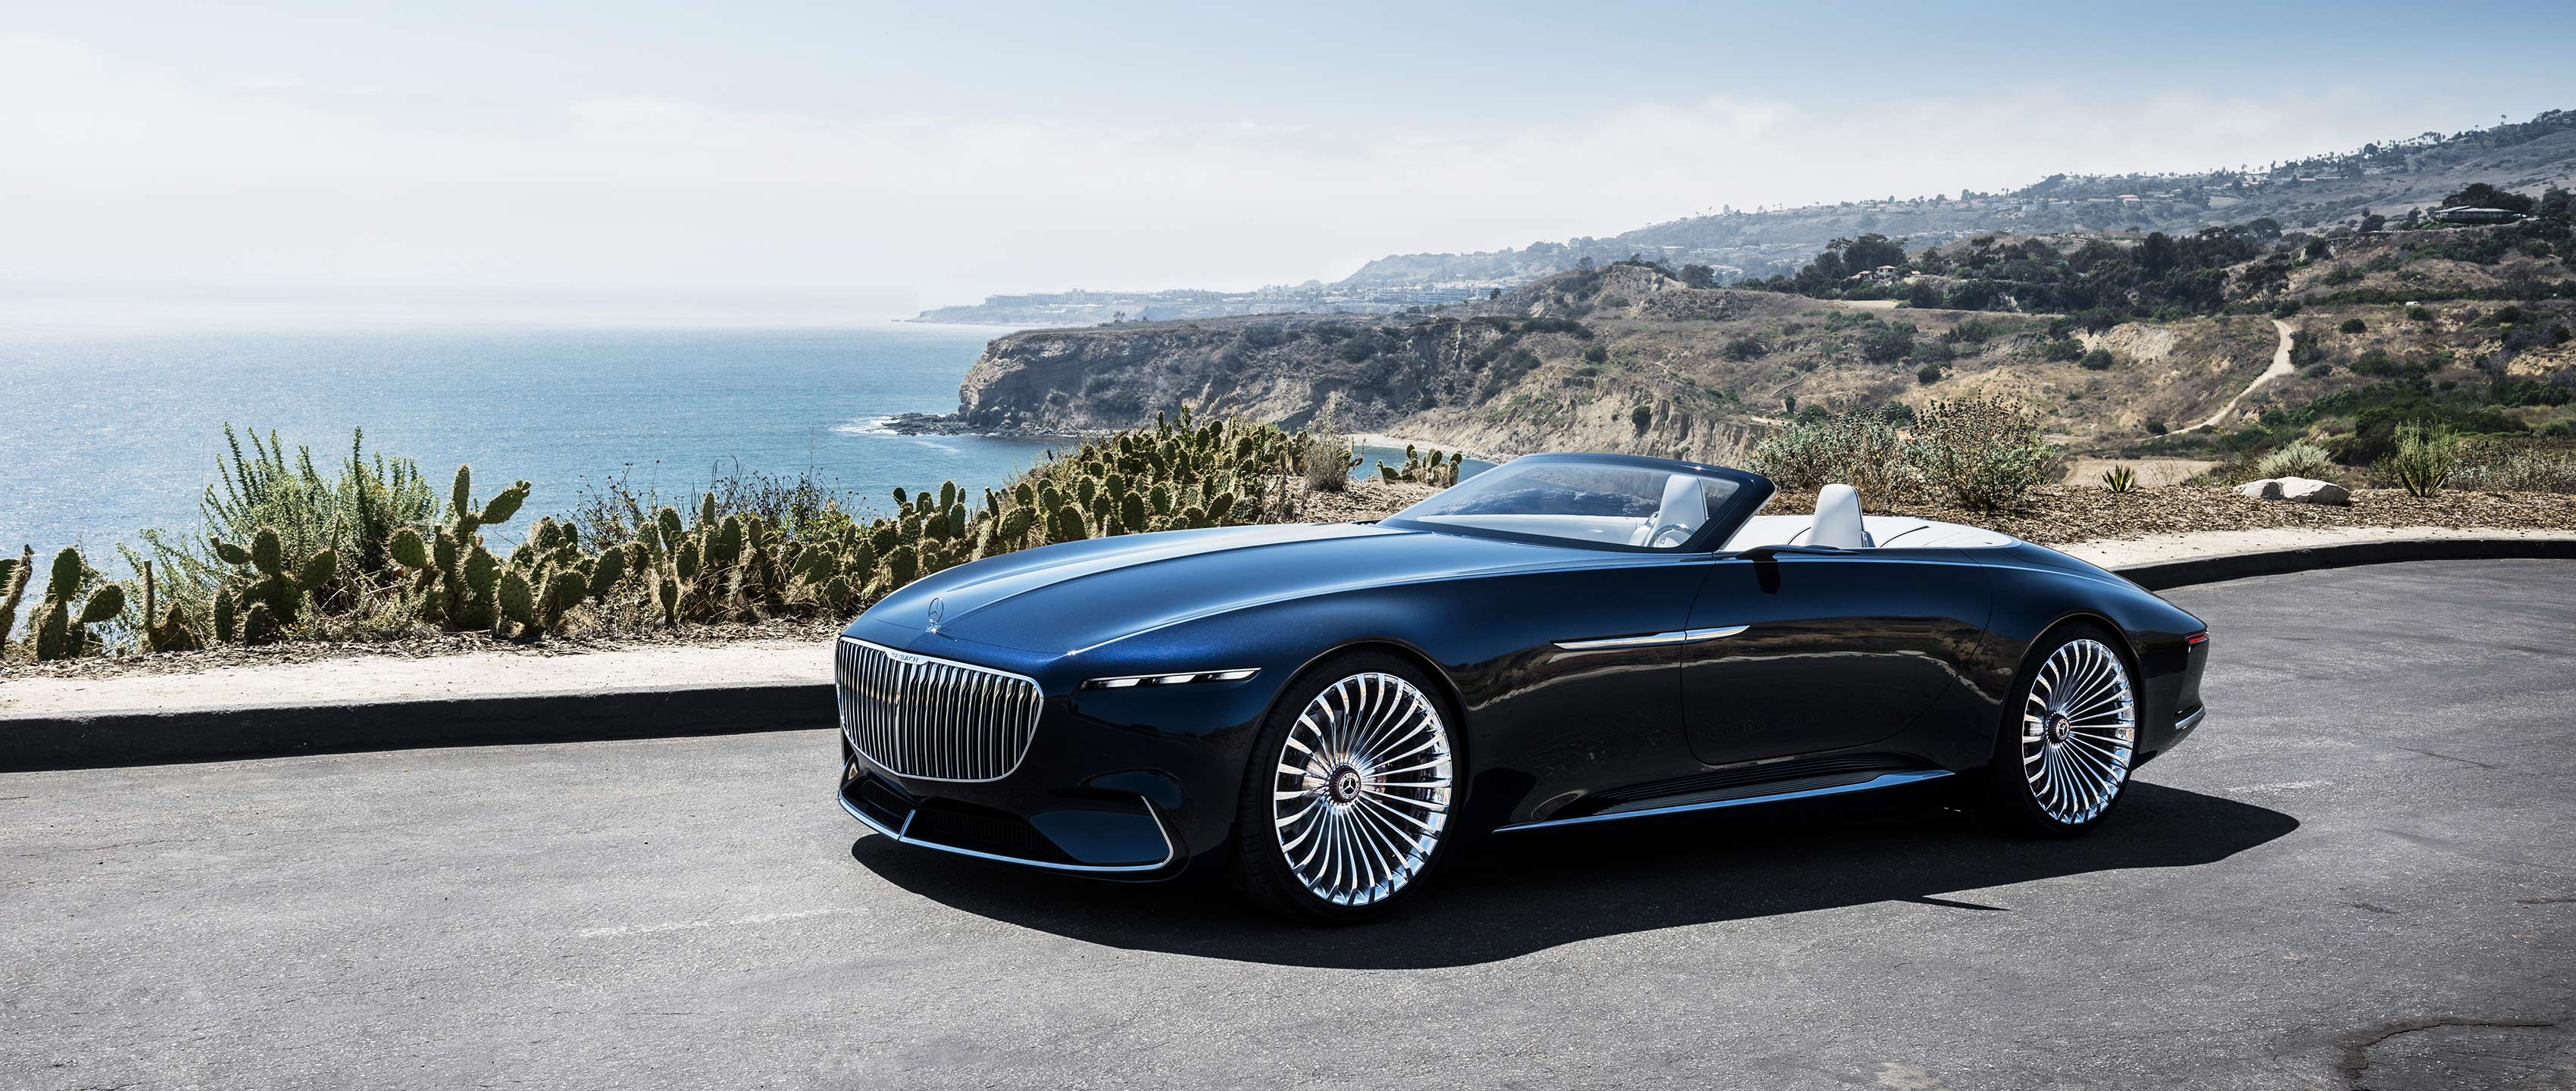 Mercedes Maybach Cabriolet 6